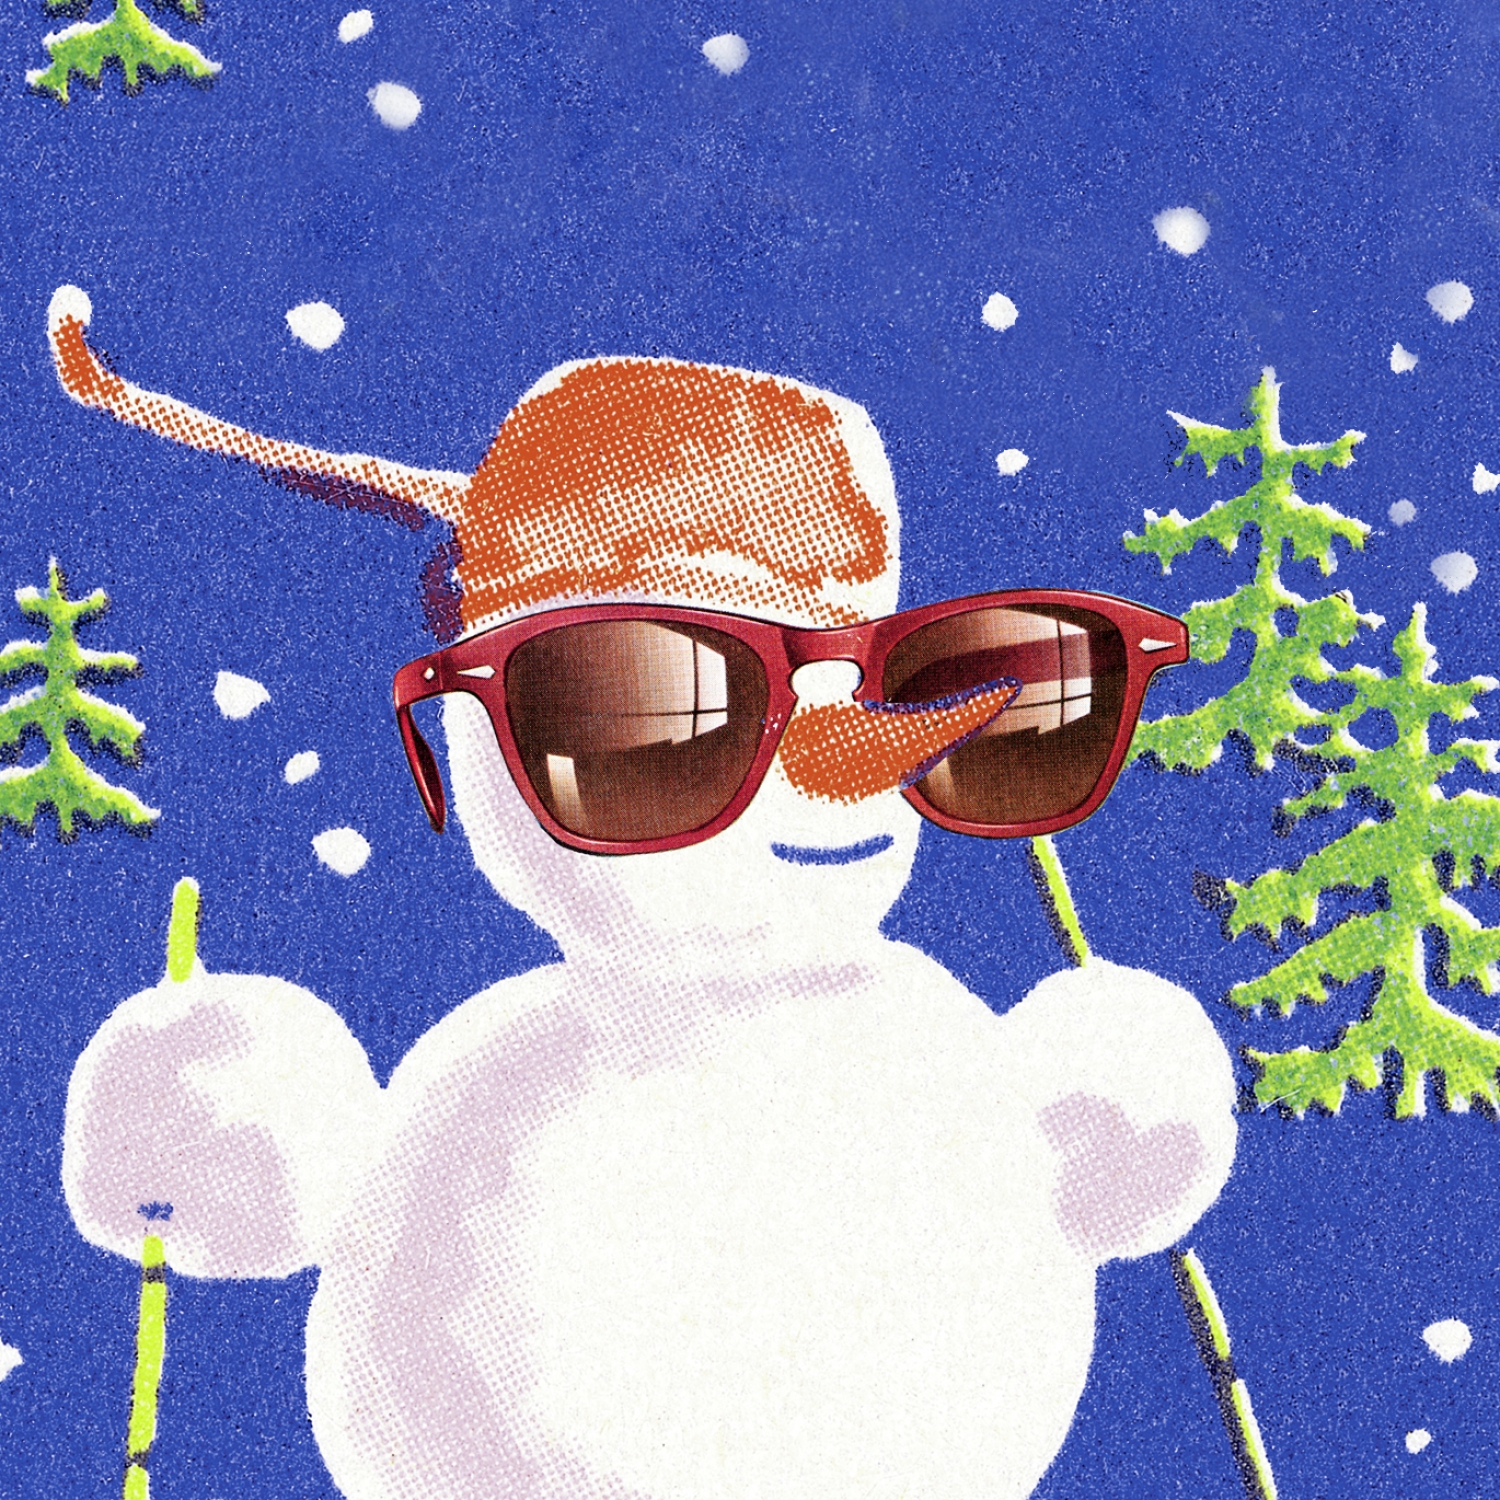 Retro illustration of smiling snowman with sunglasses